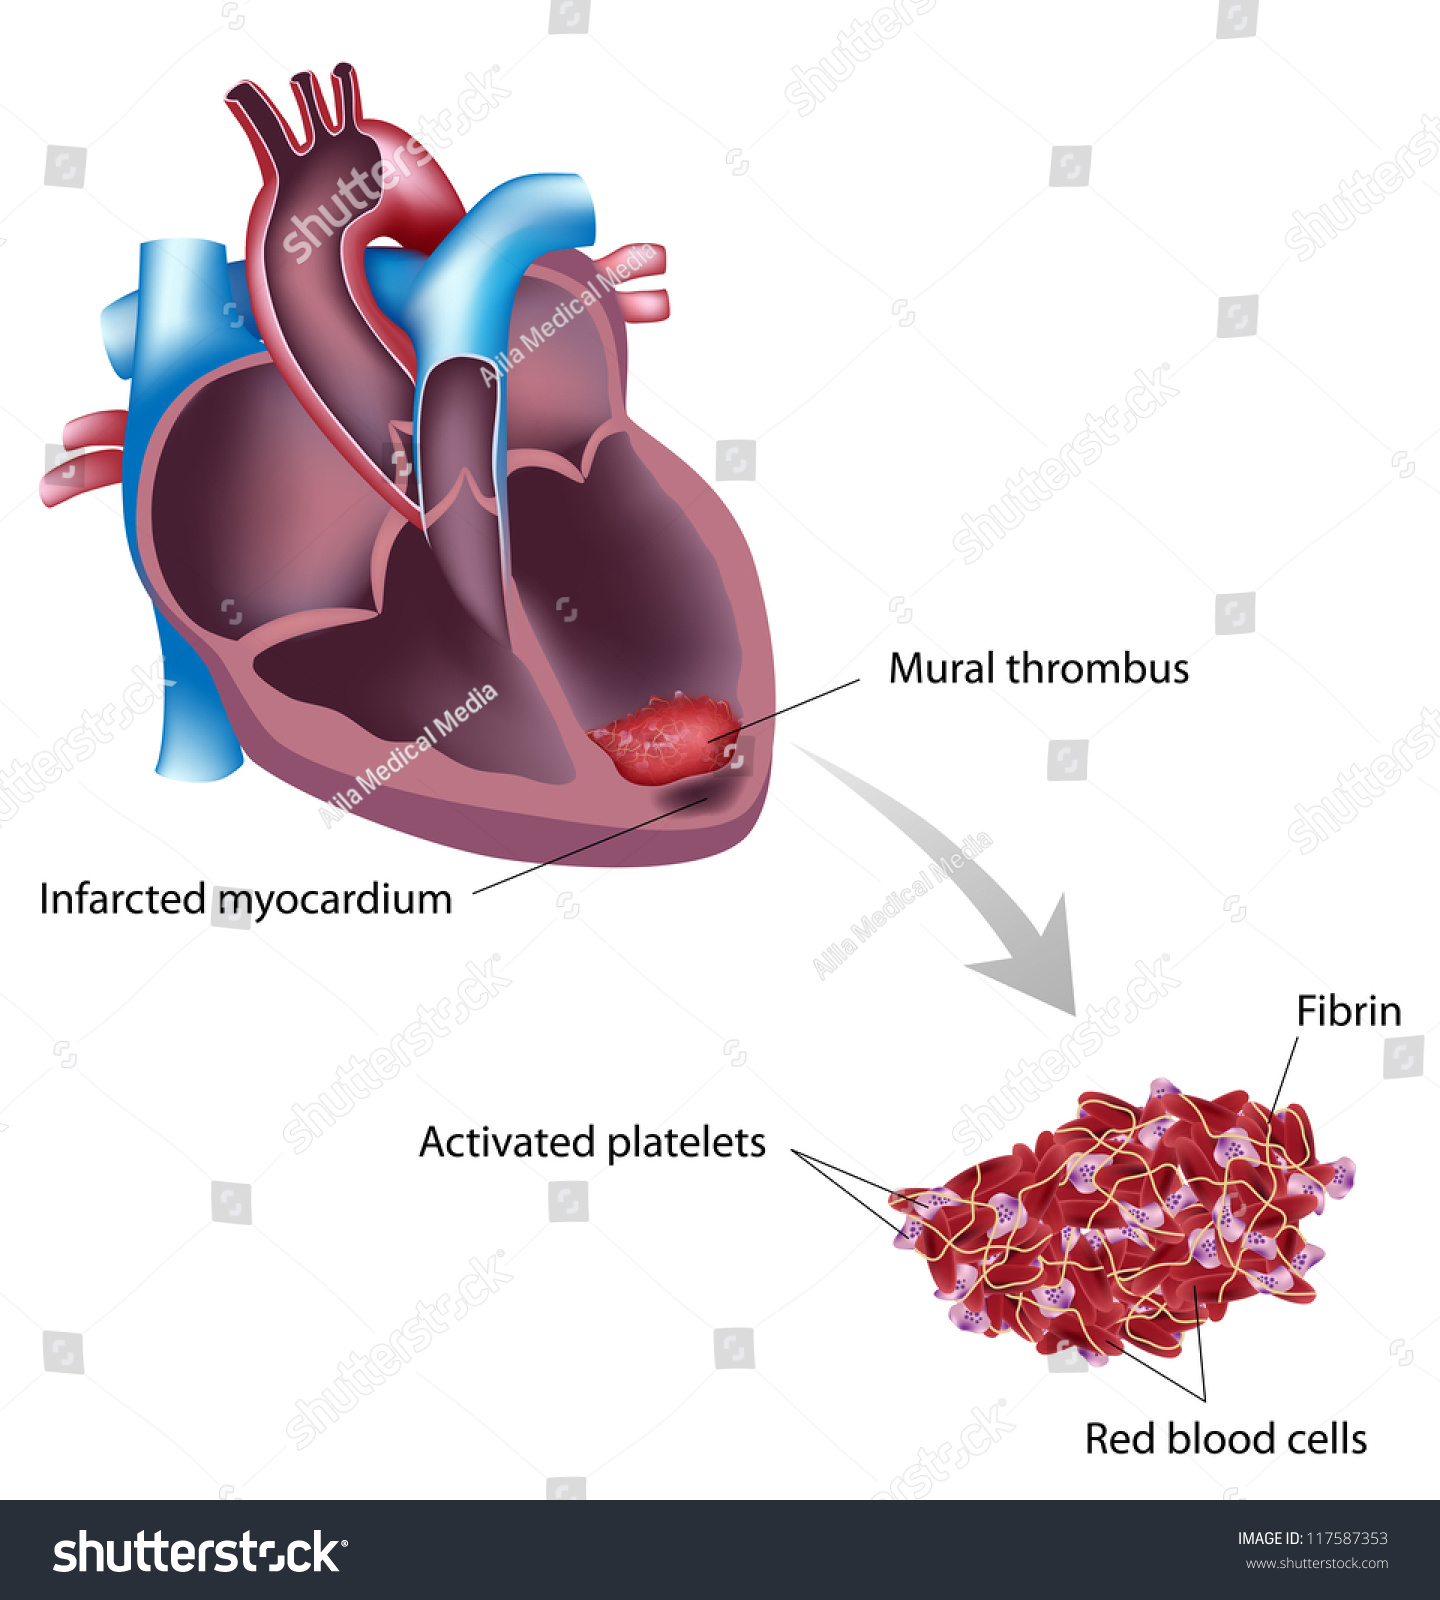 Mural thrombus complication after heart attack stock photo for Aortic mural thrombus